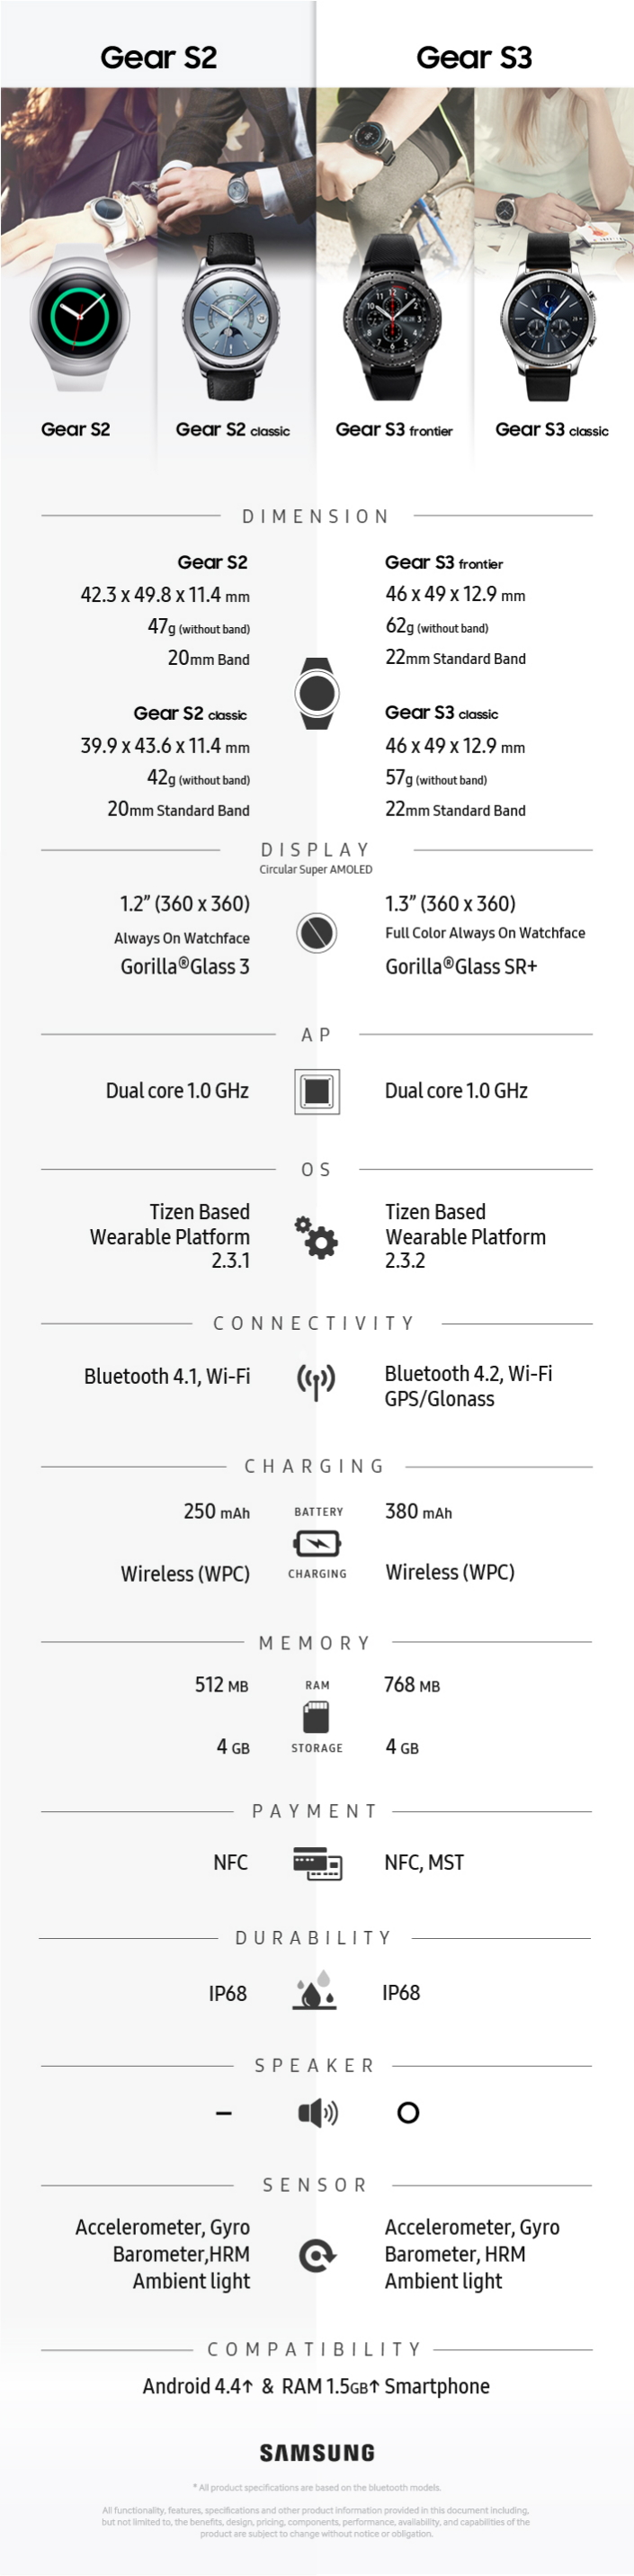 [Infographic] Gear S3 Completes the Samsung Gear S ...